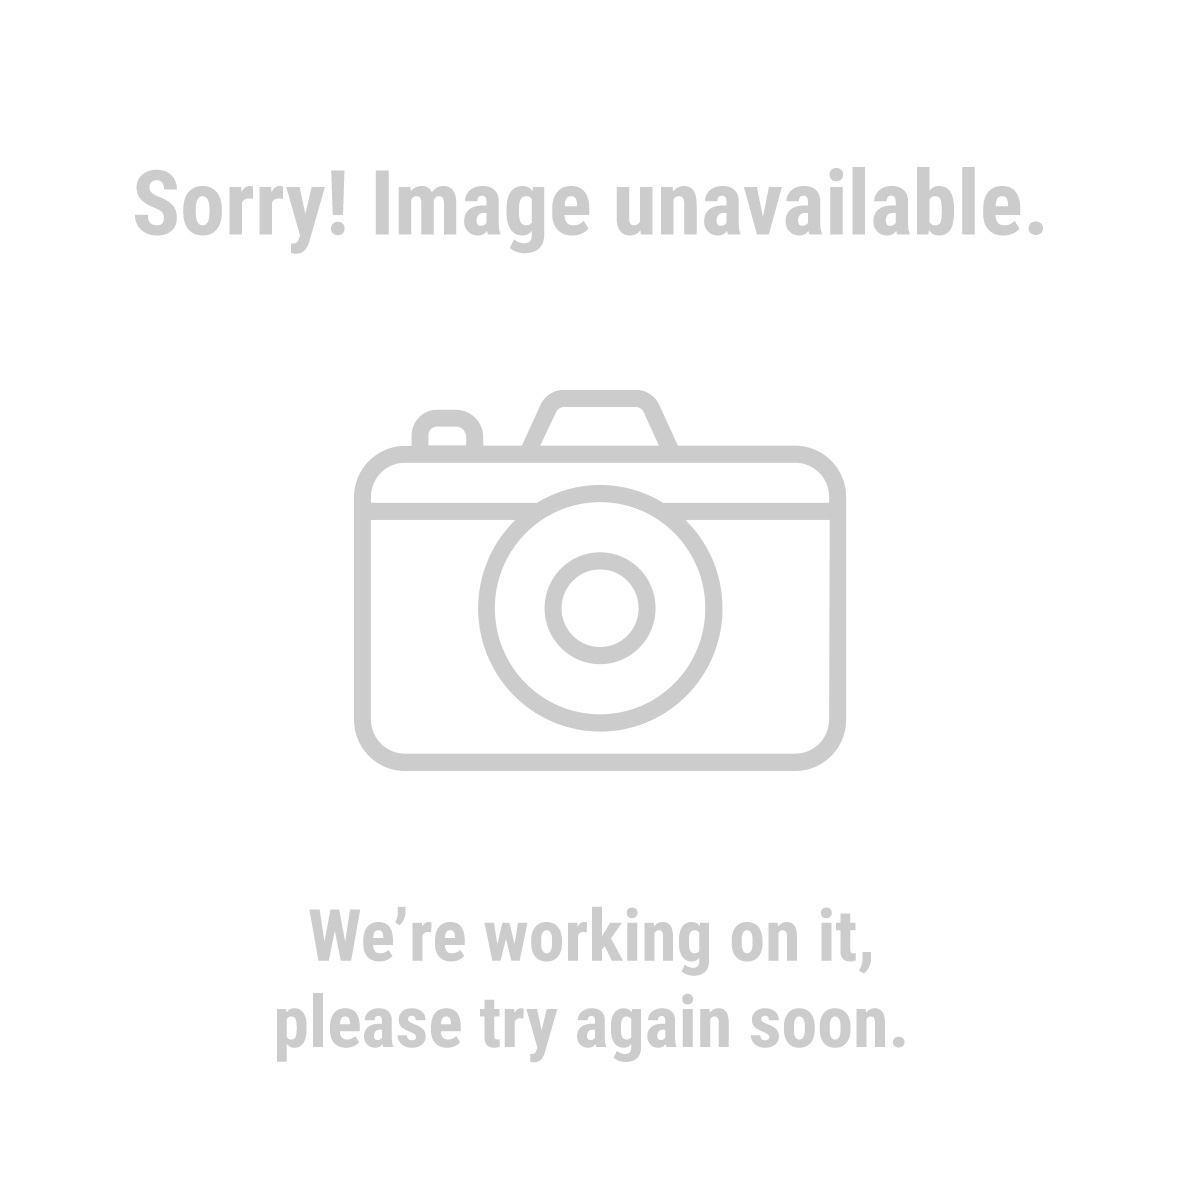 Pittsburgh 63016 40 Pc Carbon Steel SAE Tap and Die Set